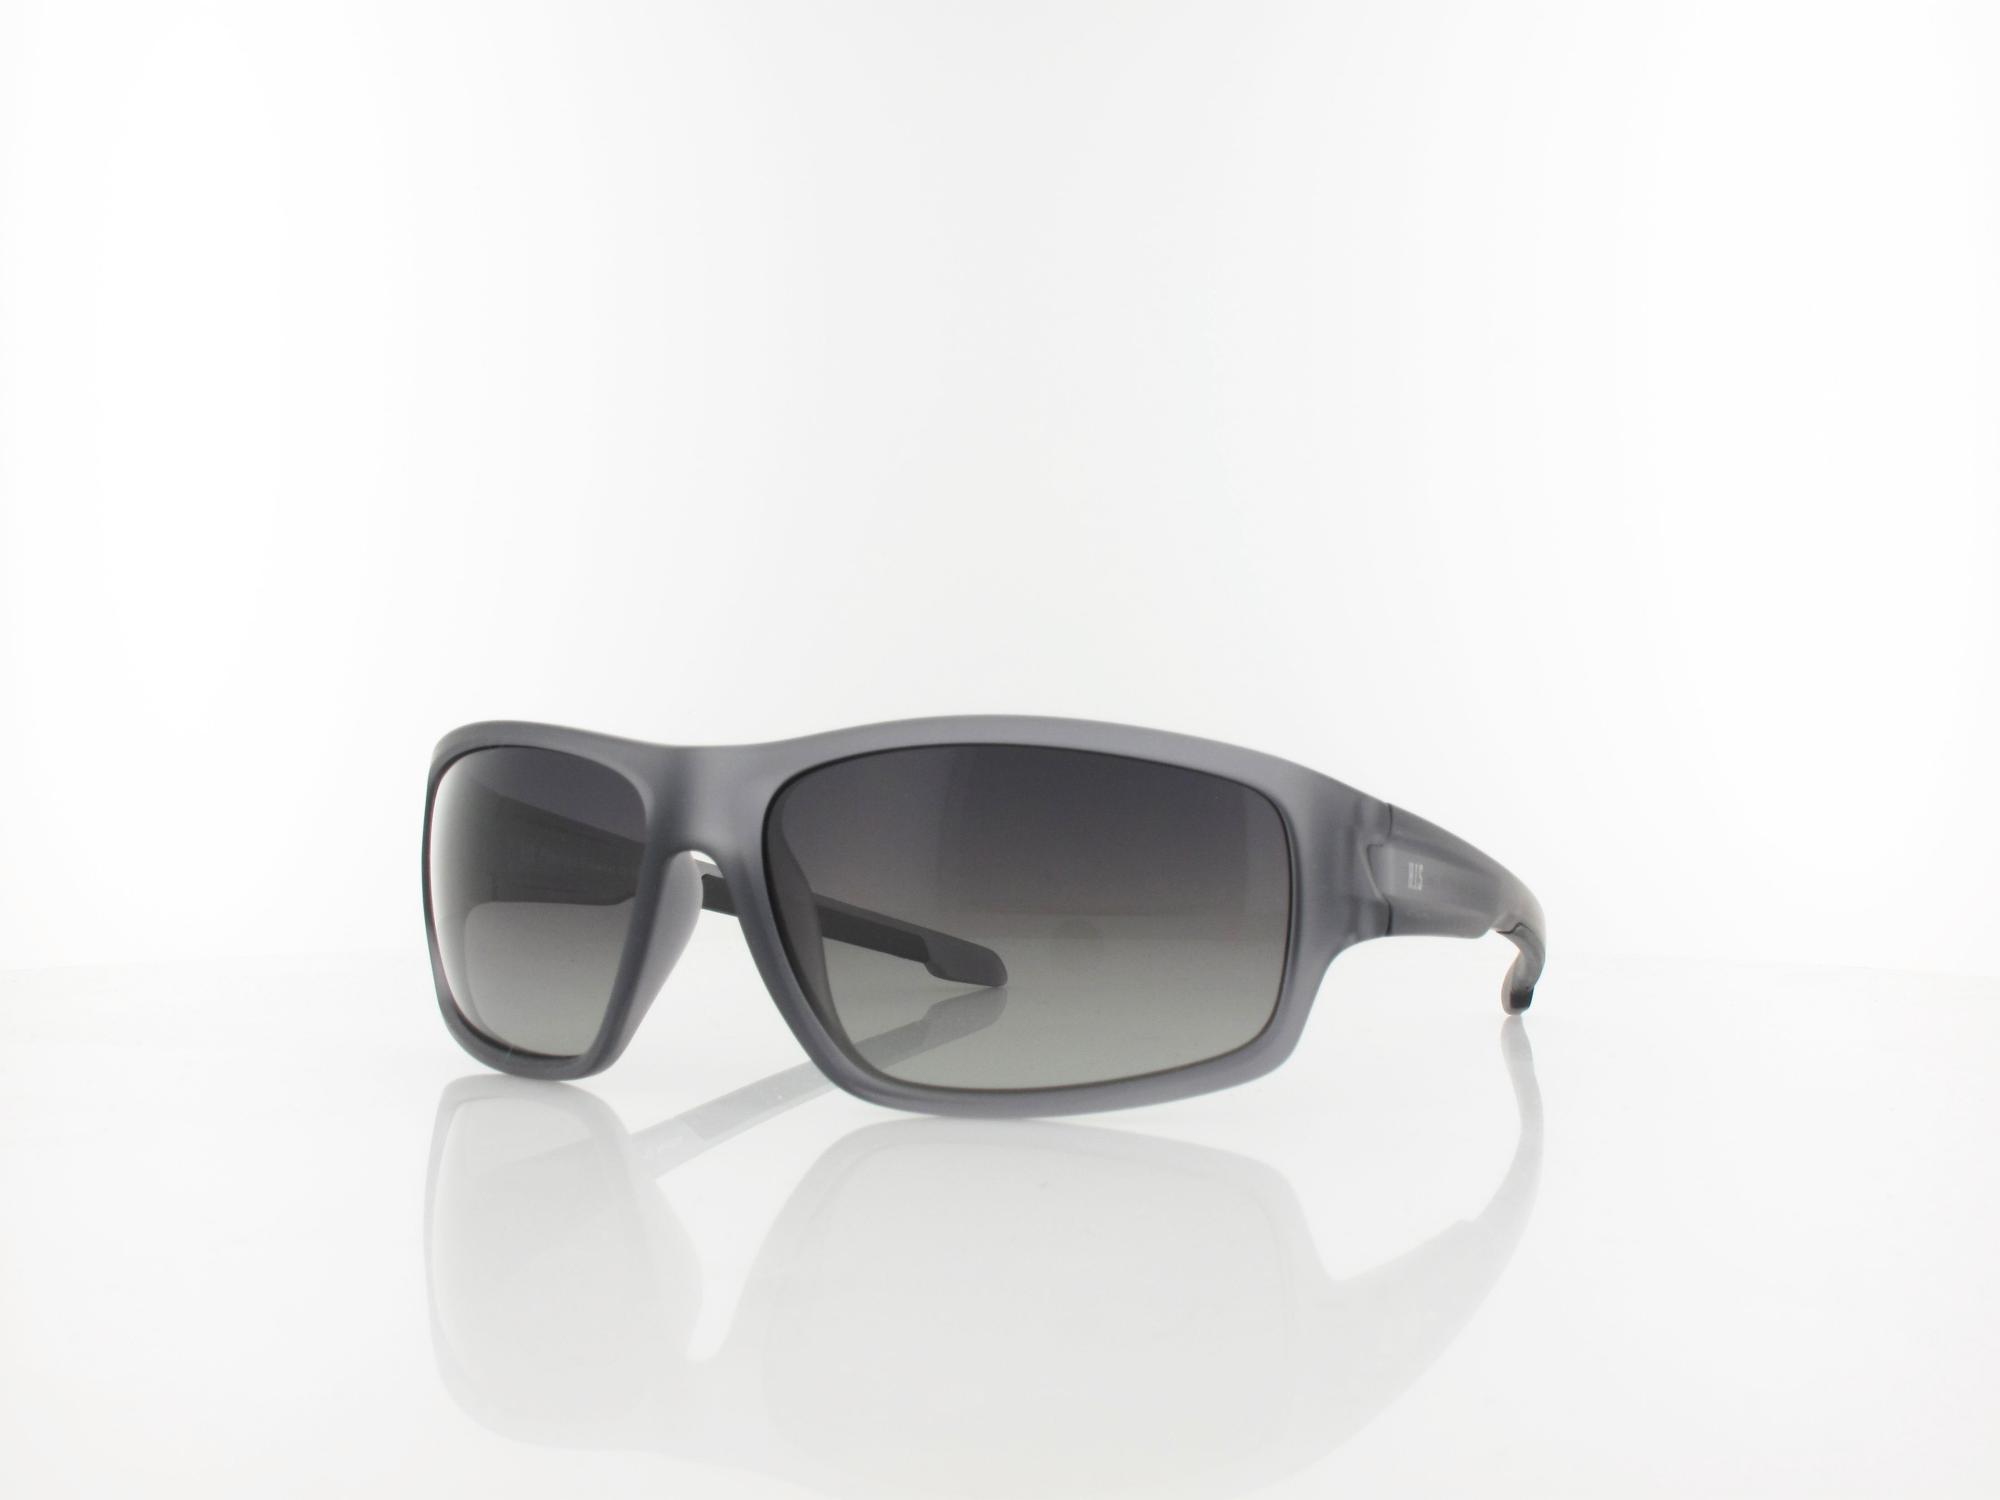 HIS polarized | HPS97103-4 63 | grey / smoke gradient polarized